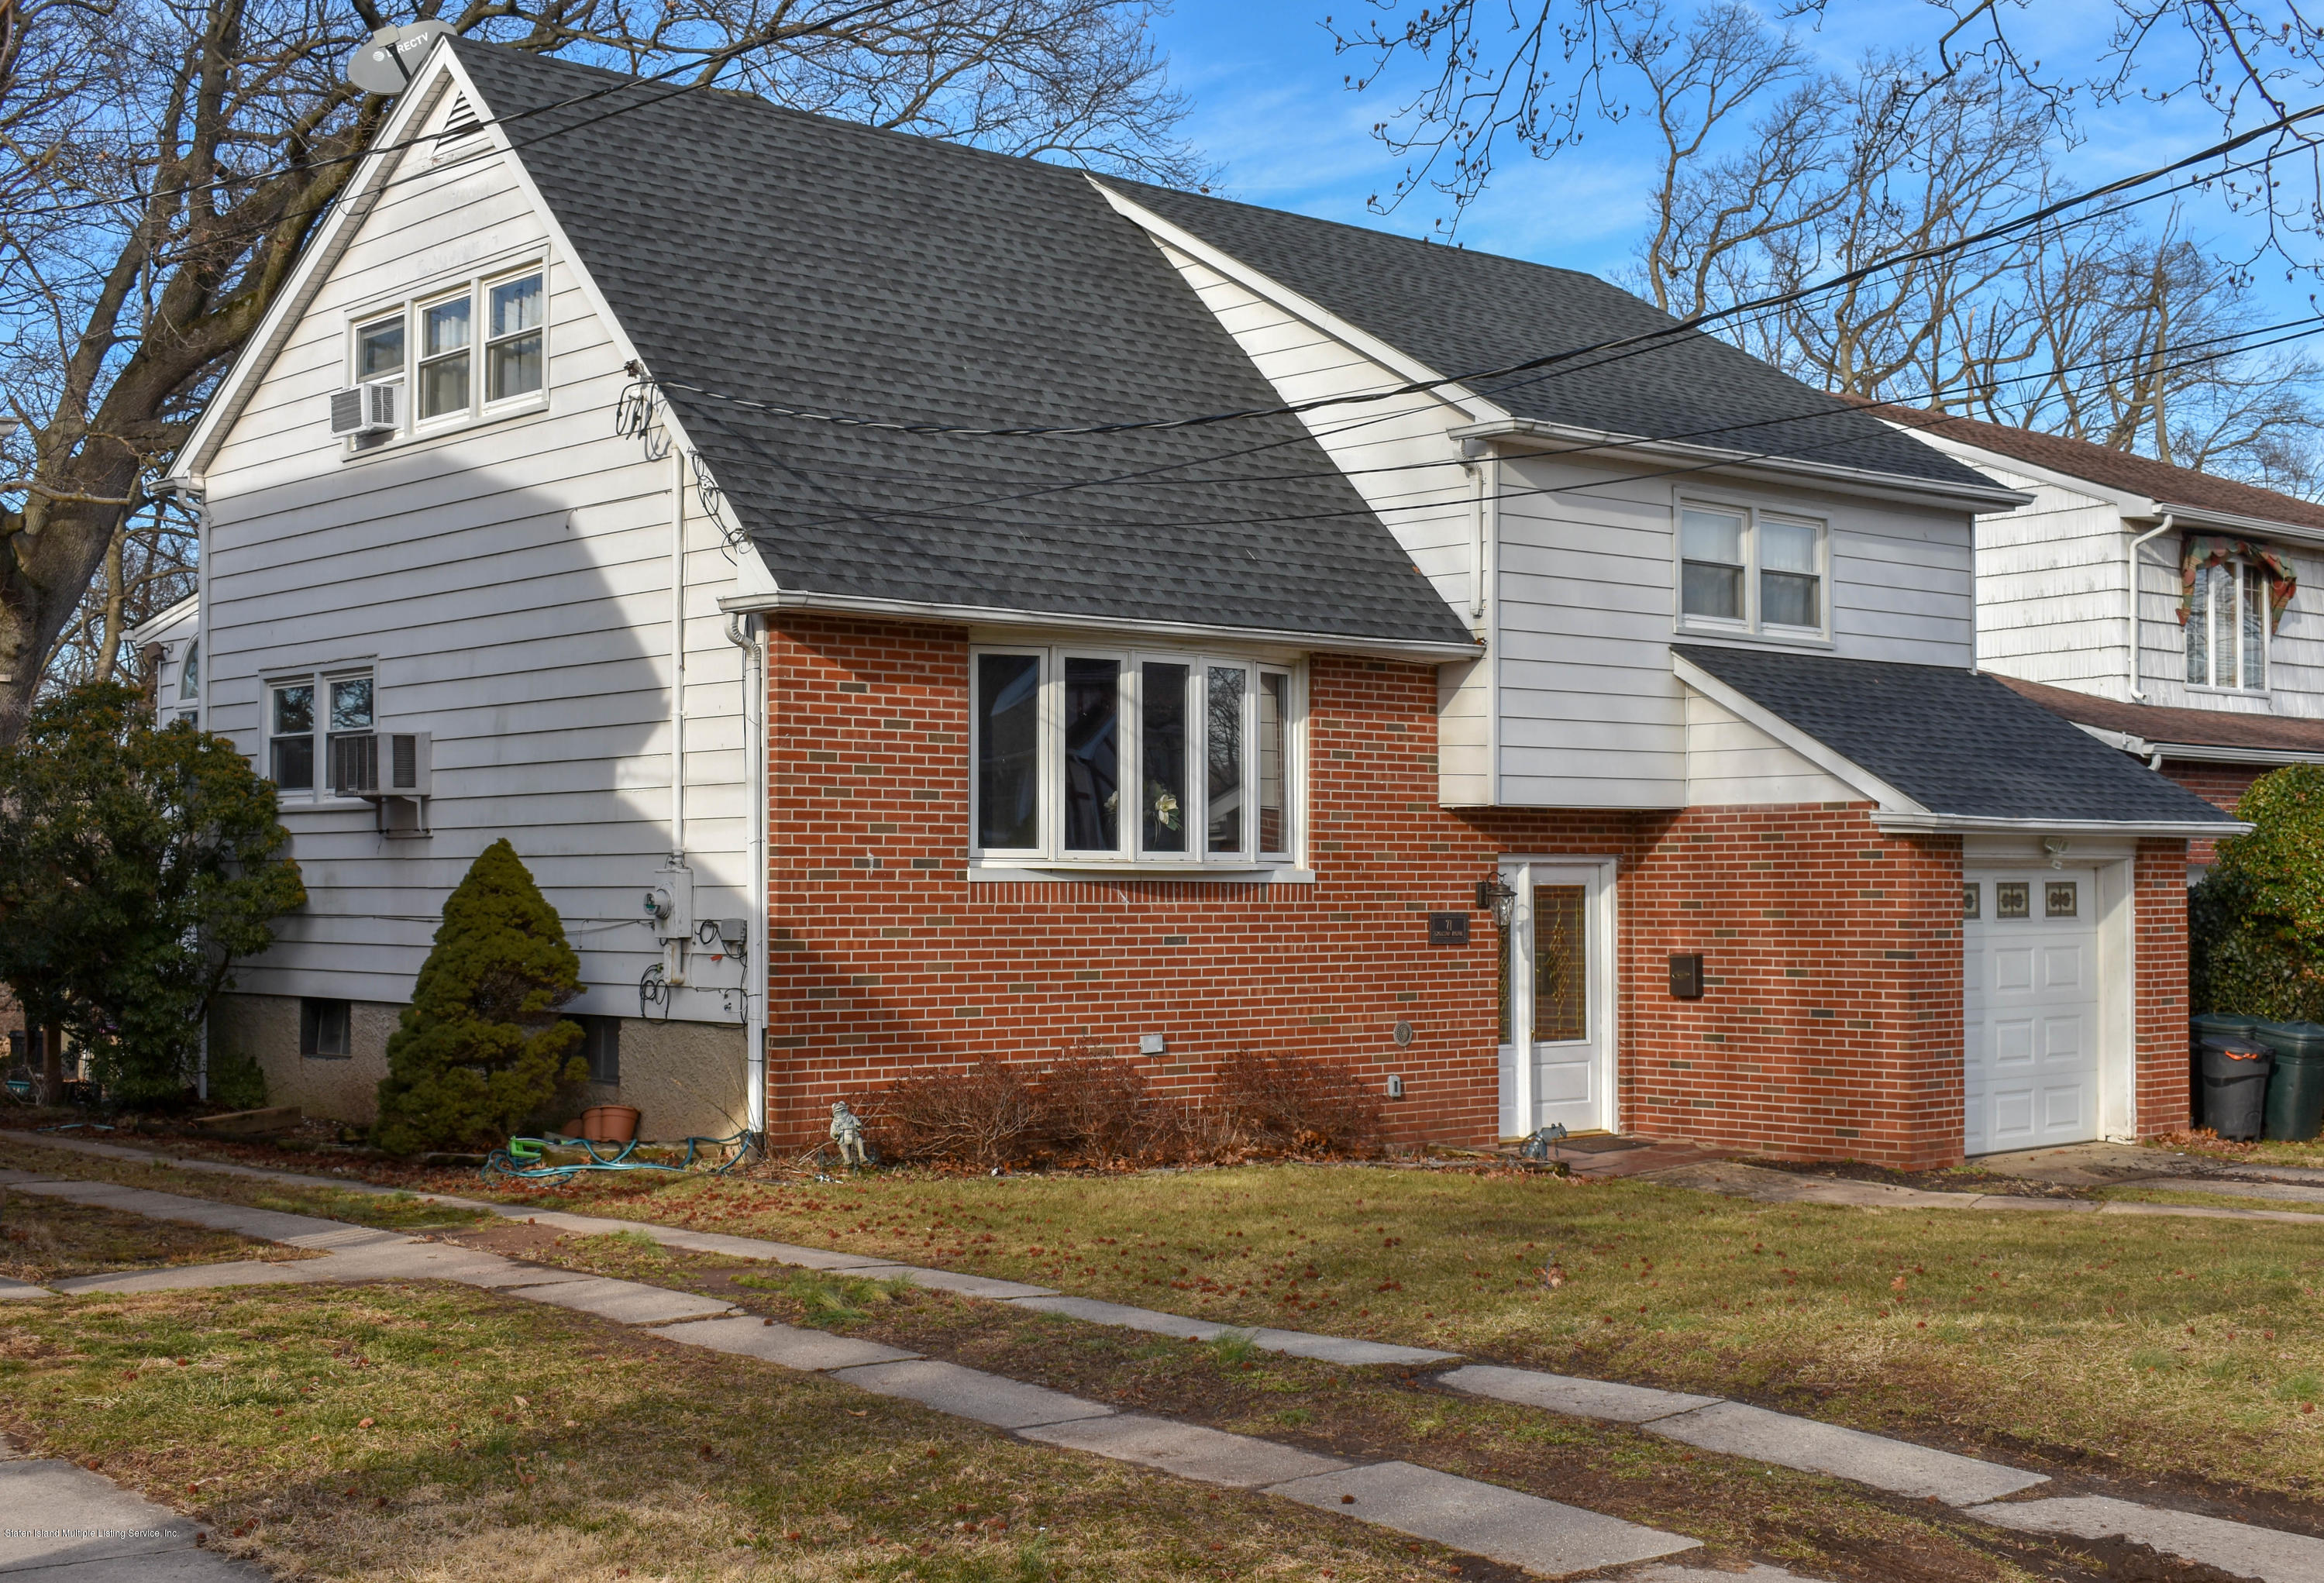 Single Family - Detached 71 Excelsior Avenue  Staten Island, NY 10309, MLS-1126131-3